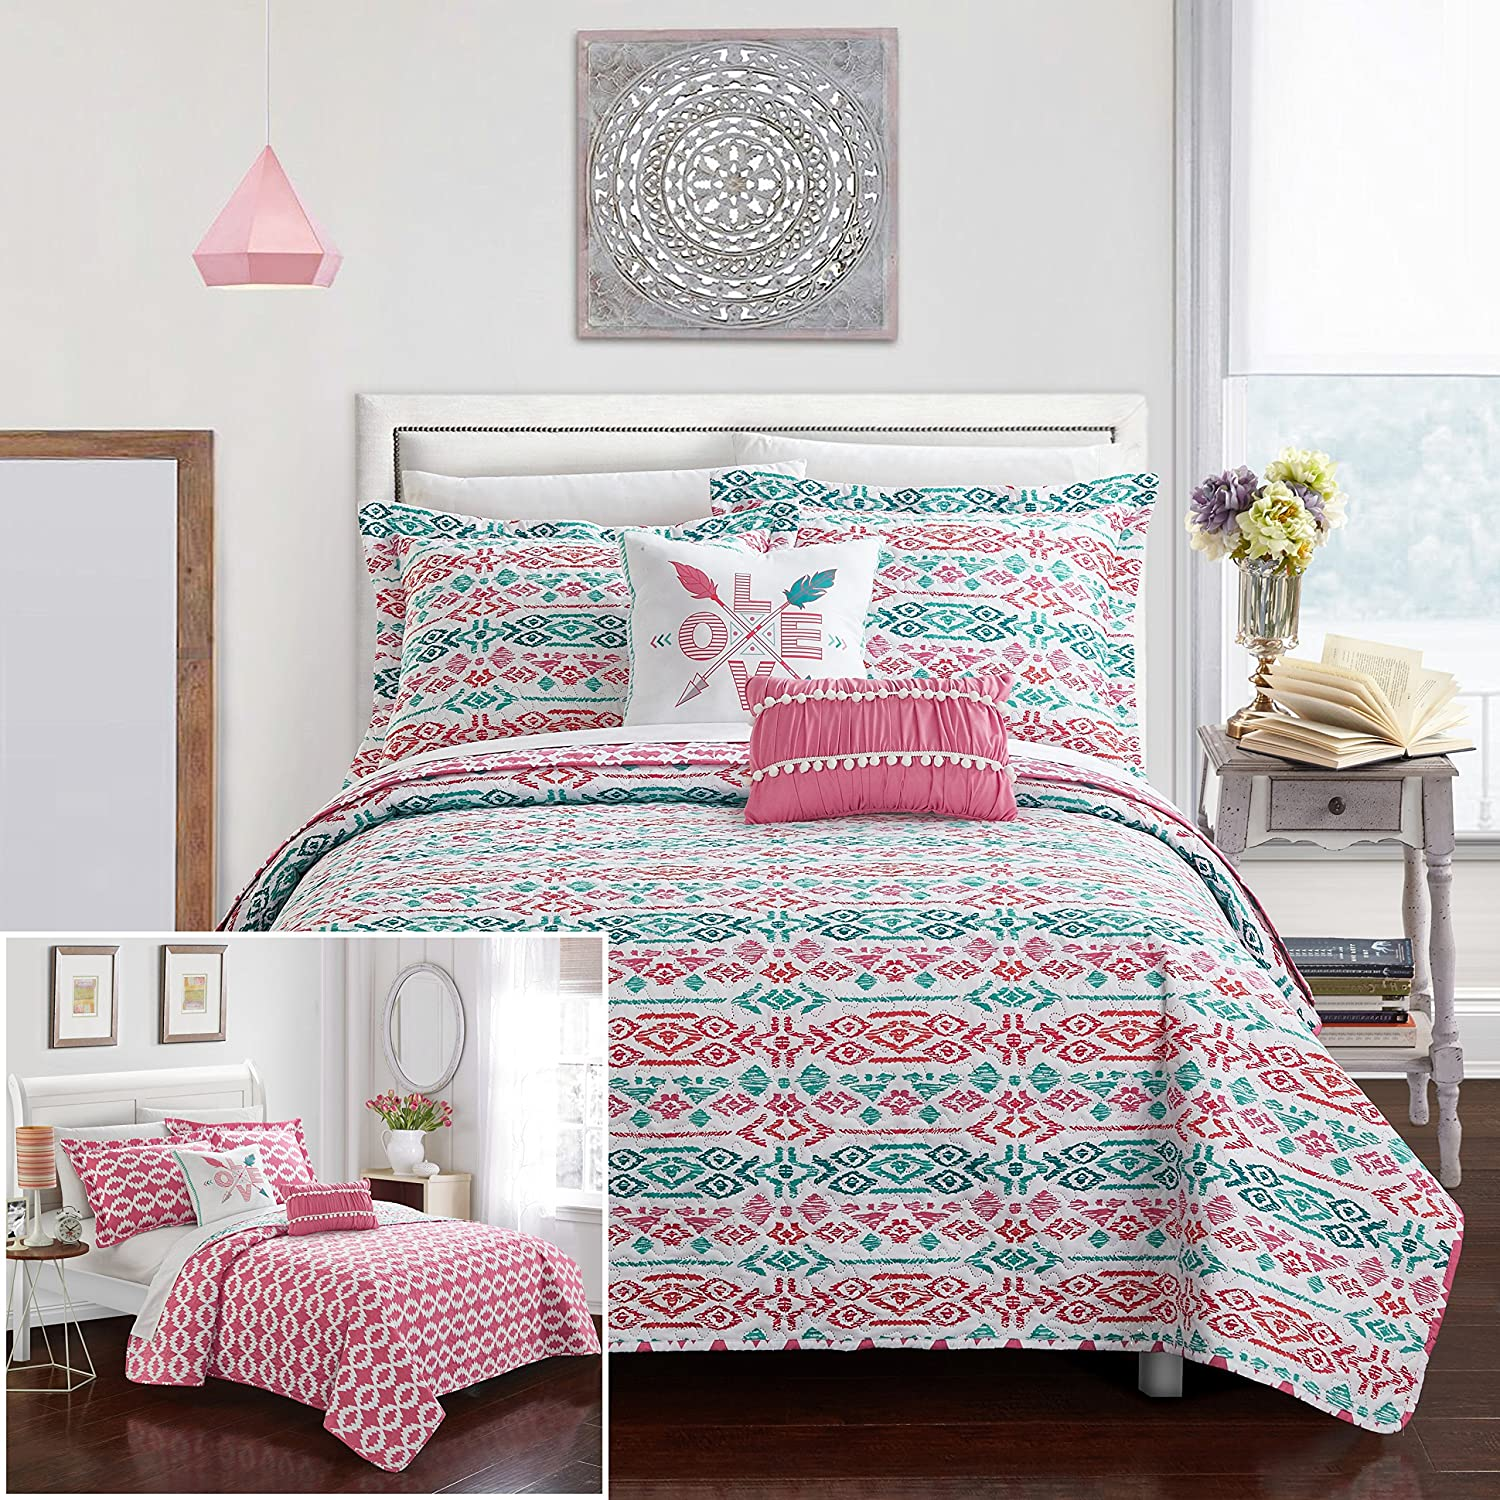 Chic Home 5 Piece Millie Reversible Ikat Bohemian Designer Printed Quilt and Shams Set, Includes Love and pom pom Pillow Full Quilt Set Aqua